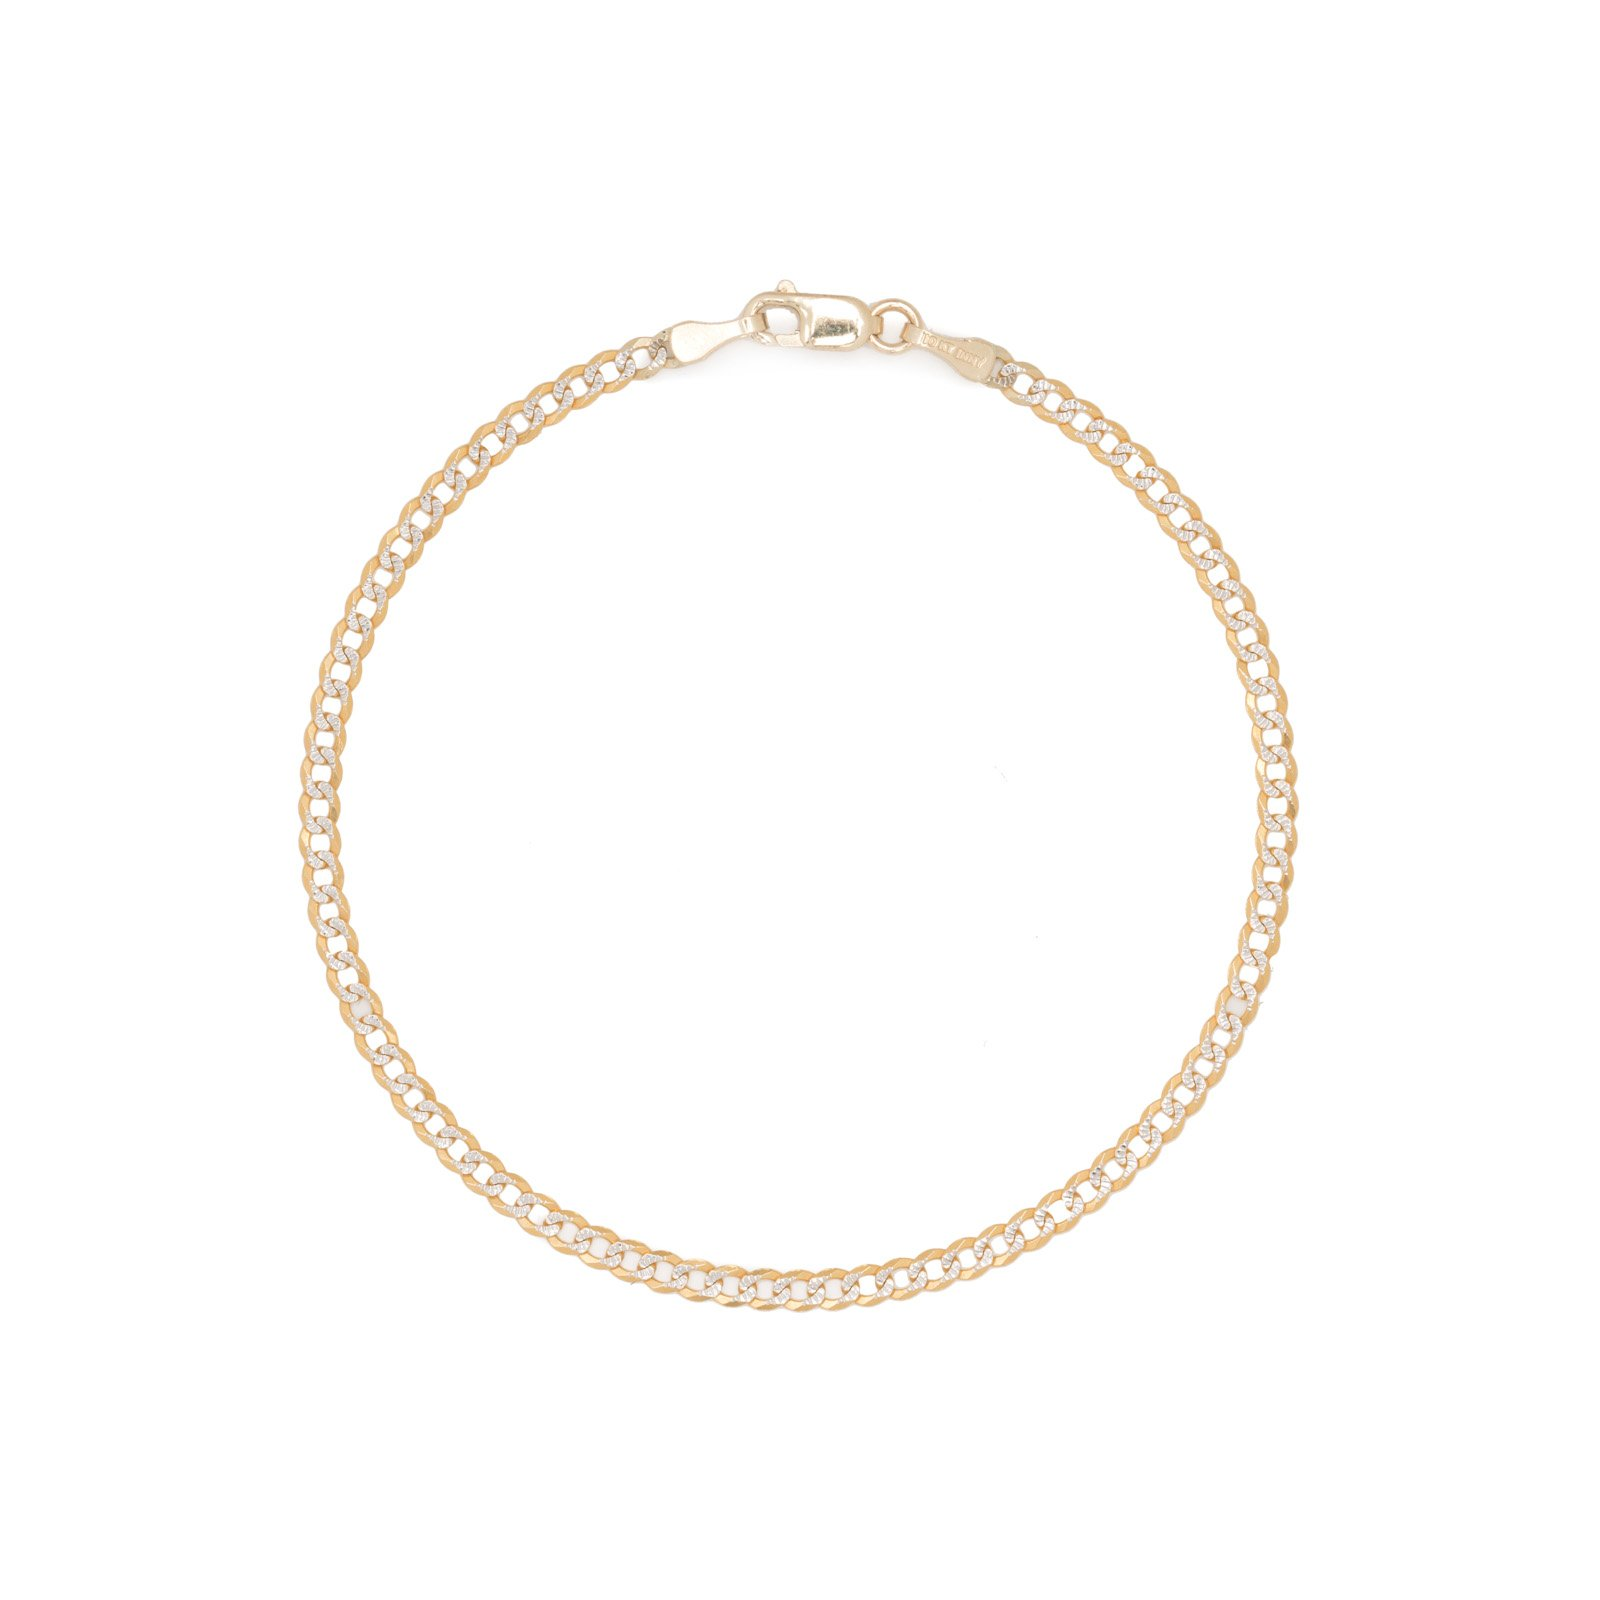 7 inch 10k Two-Tone Gold Curb Cuban Chain Bracelet and Anklet with White Pave, 0.1 Inch (2.5mm)